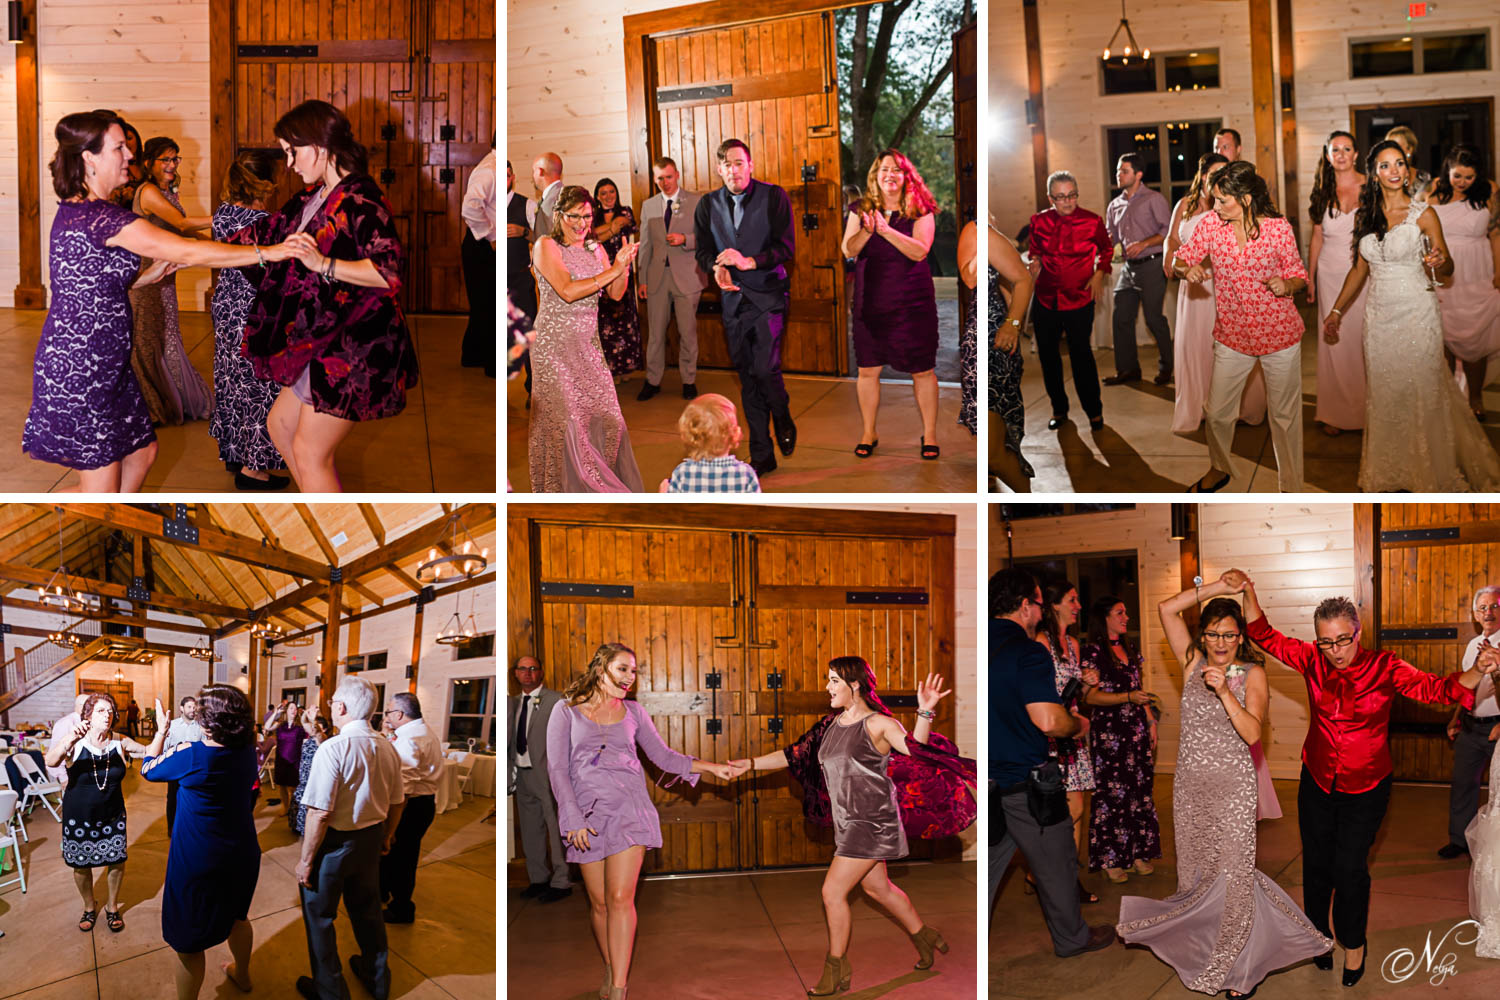 guests on the dance floor at the reception dancing to Latin music